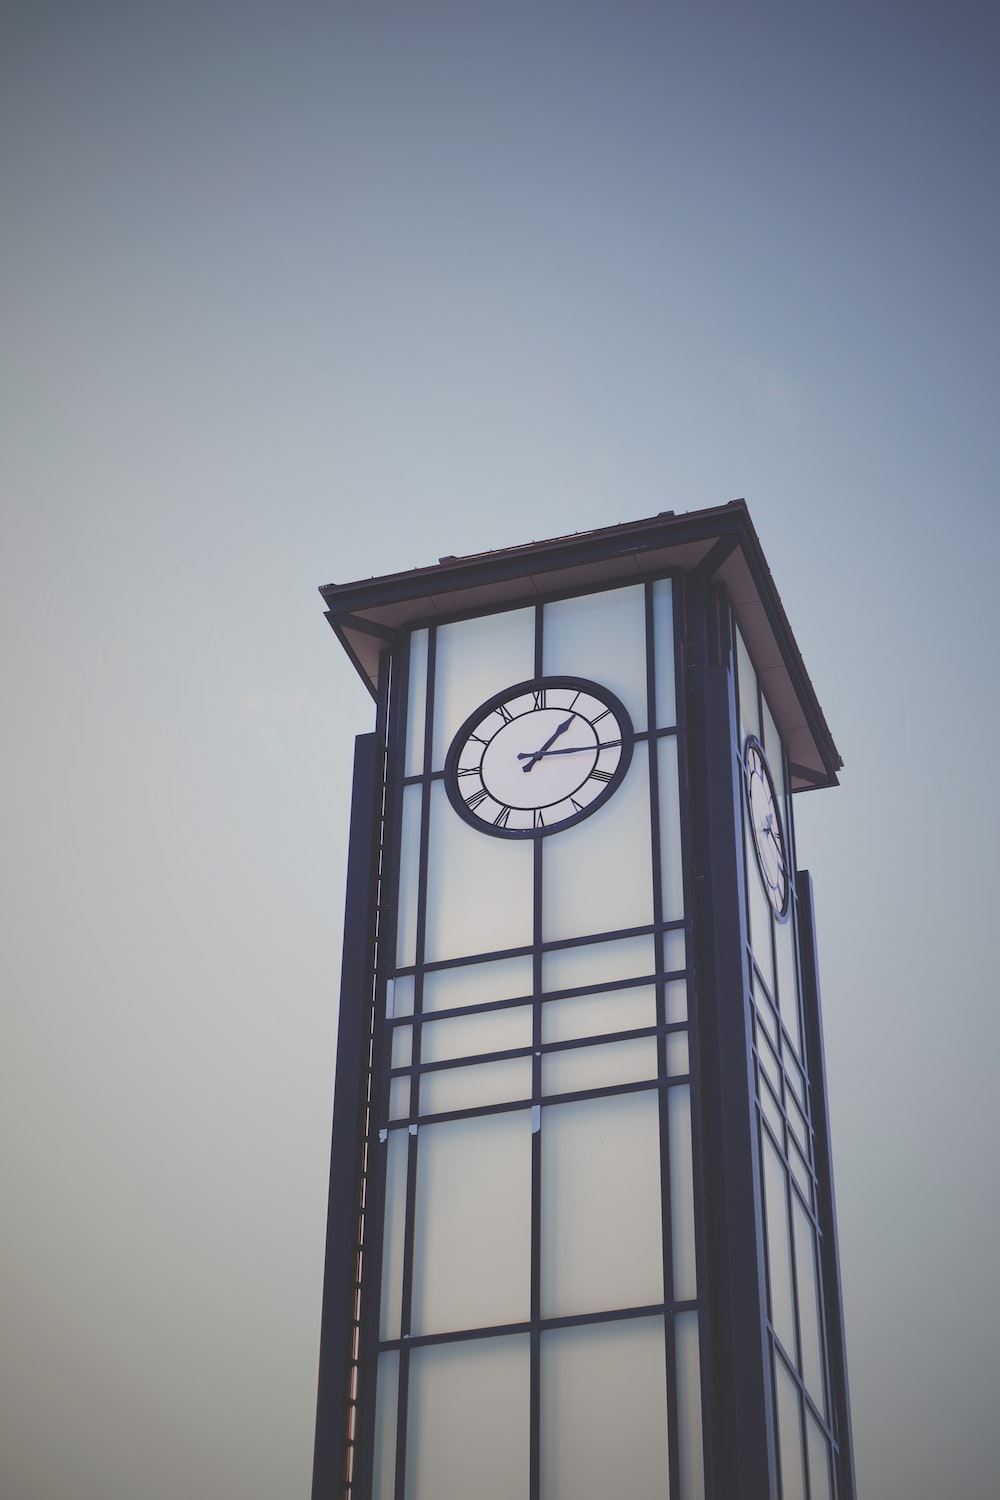 brown and white tower with clock